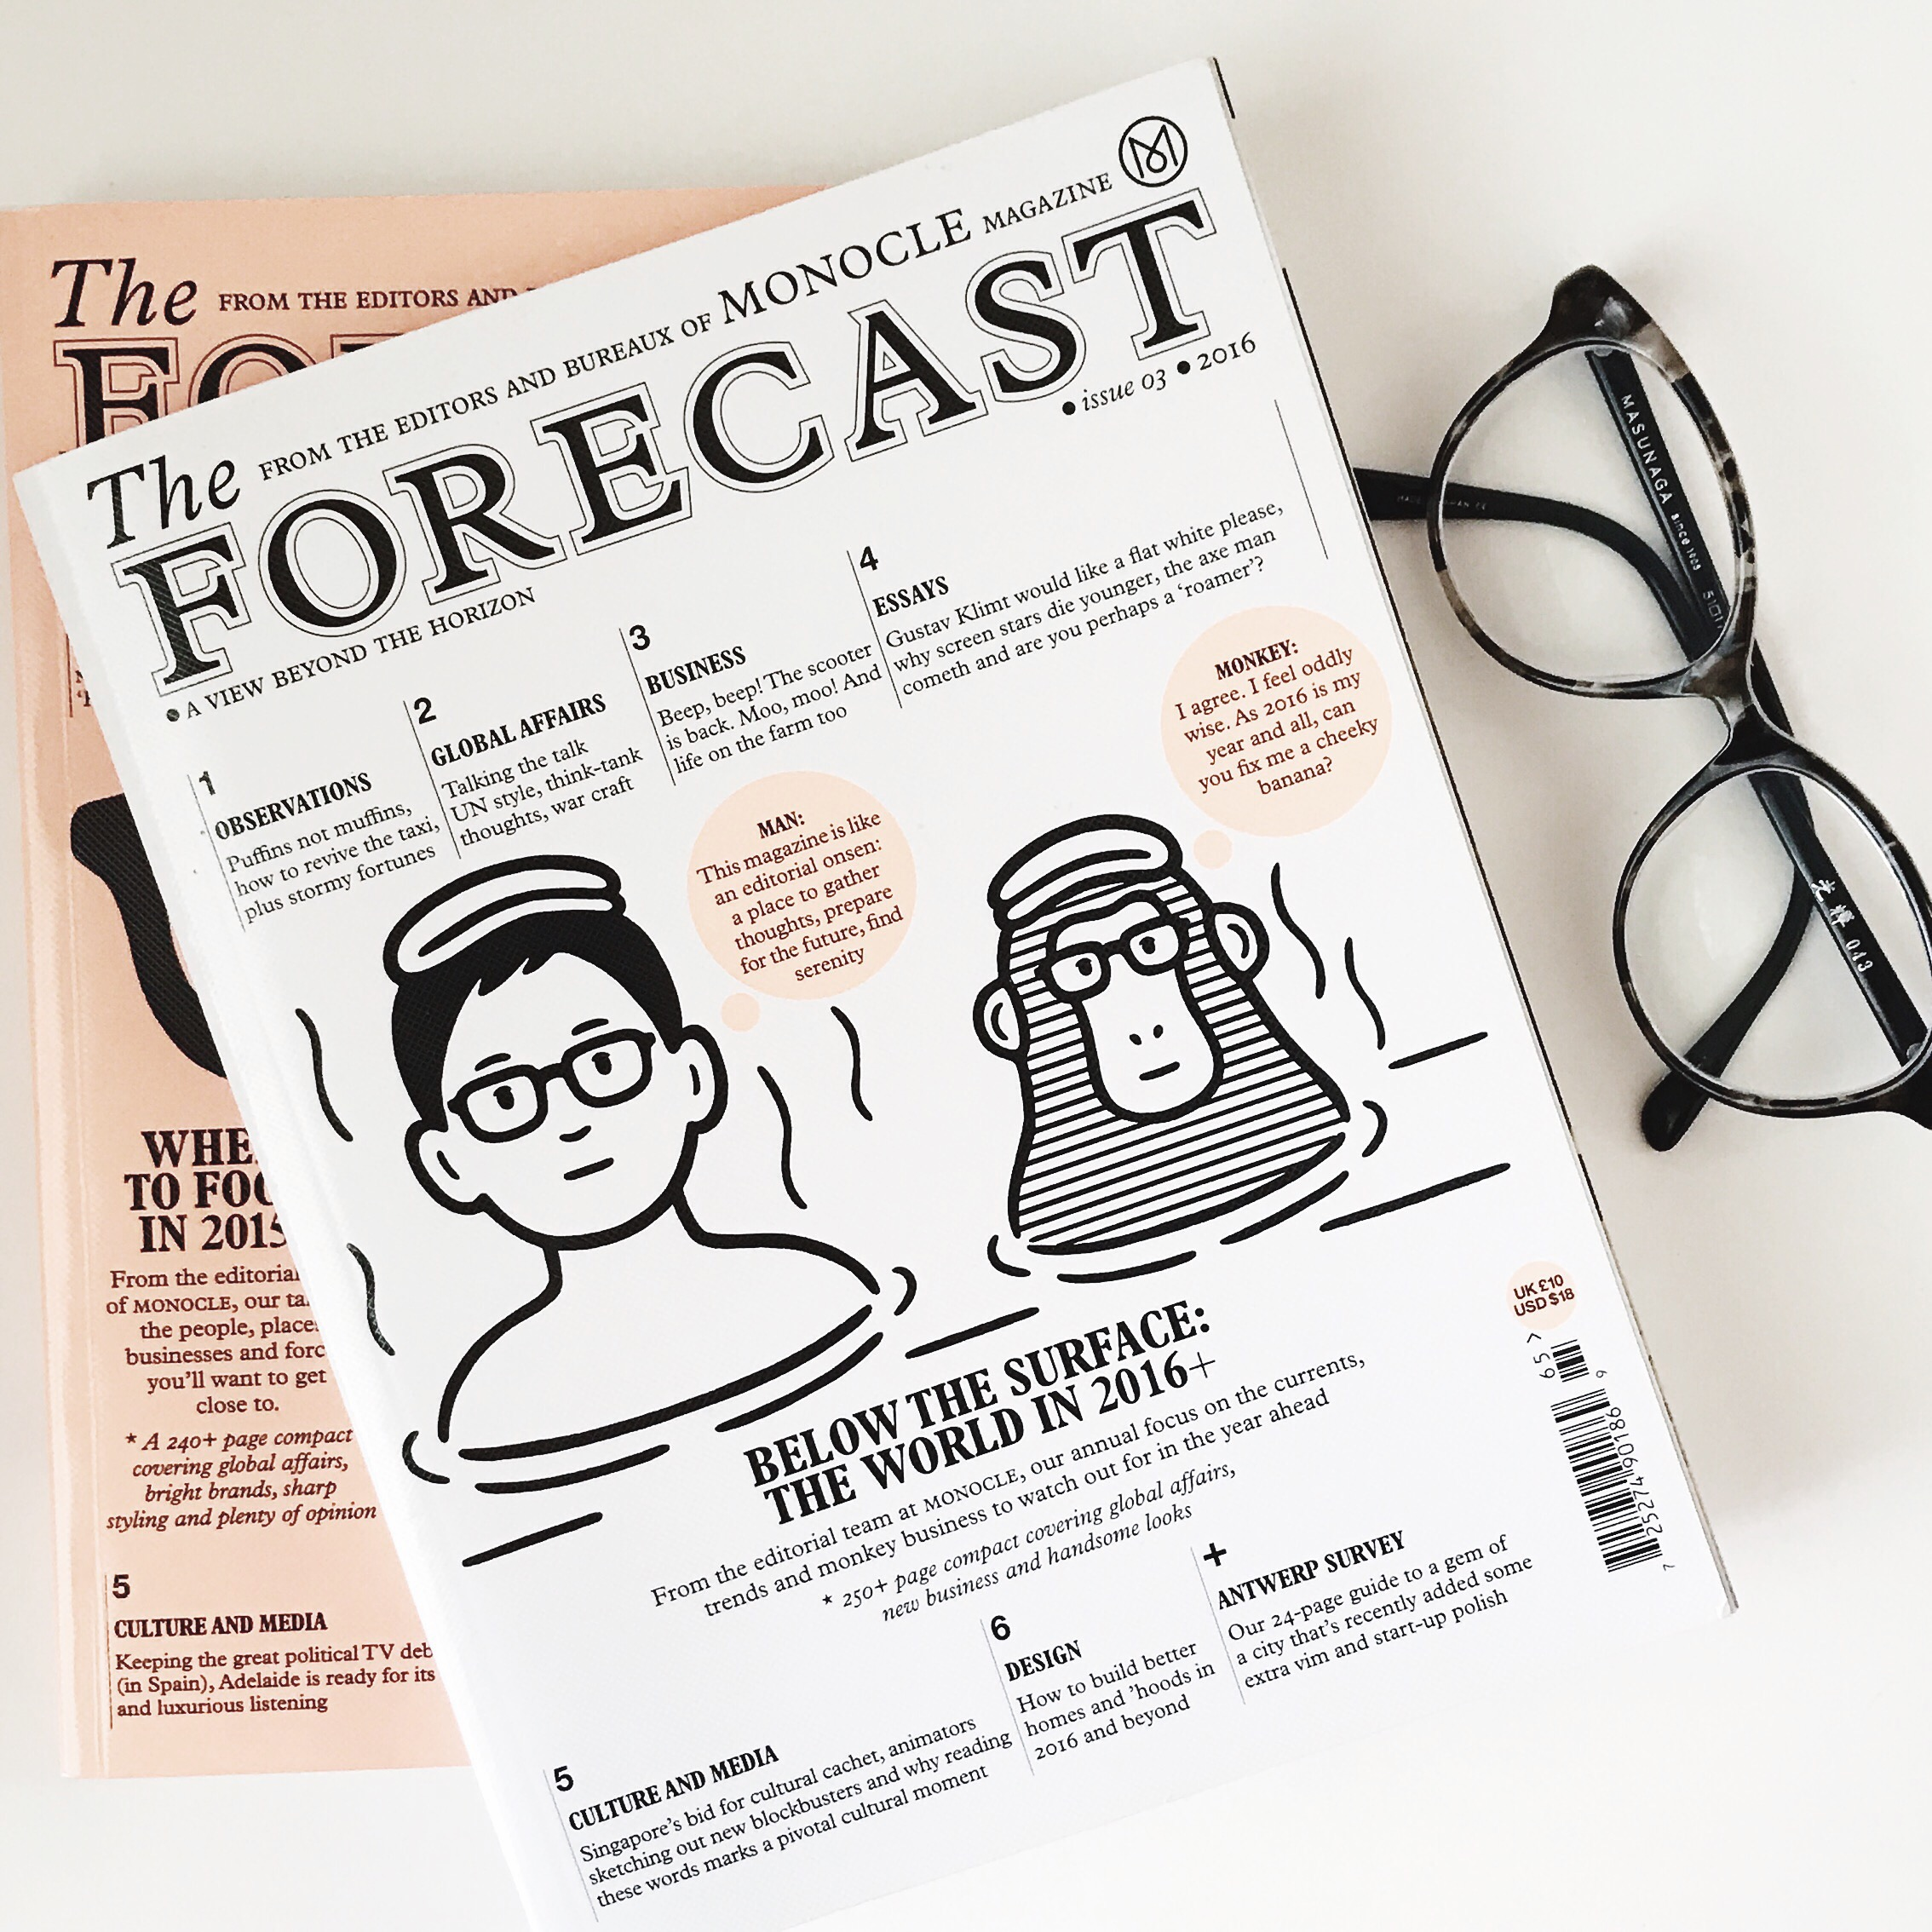 The Forecast, by Monocle